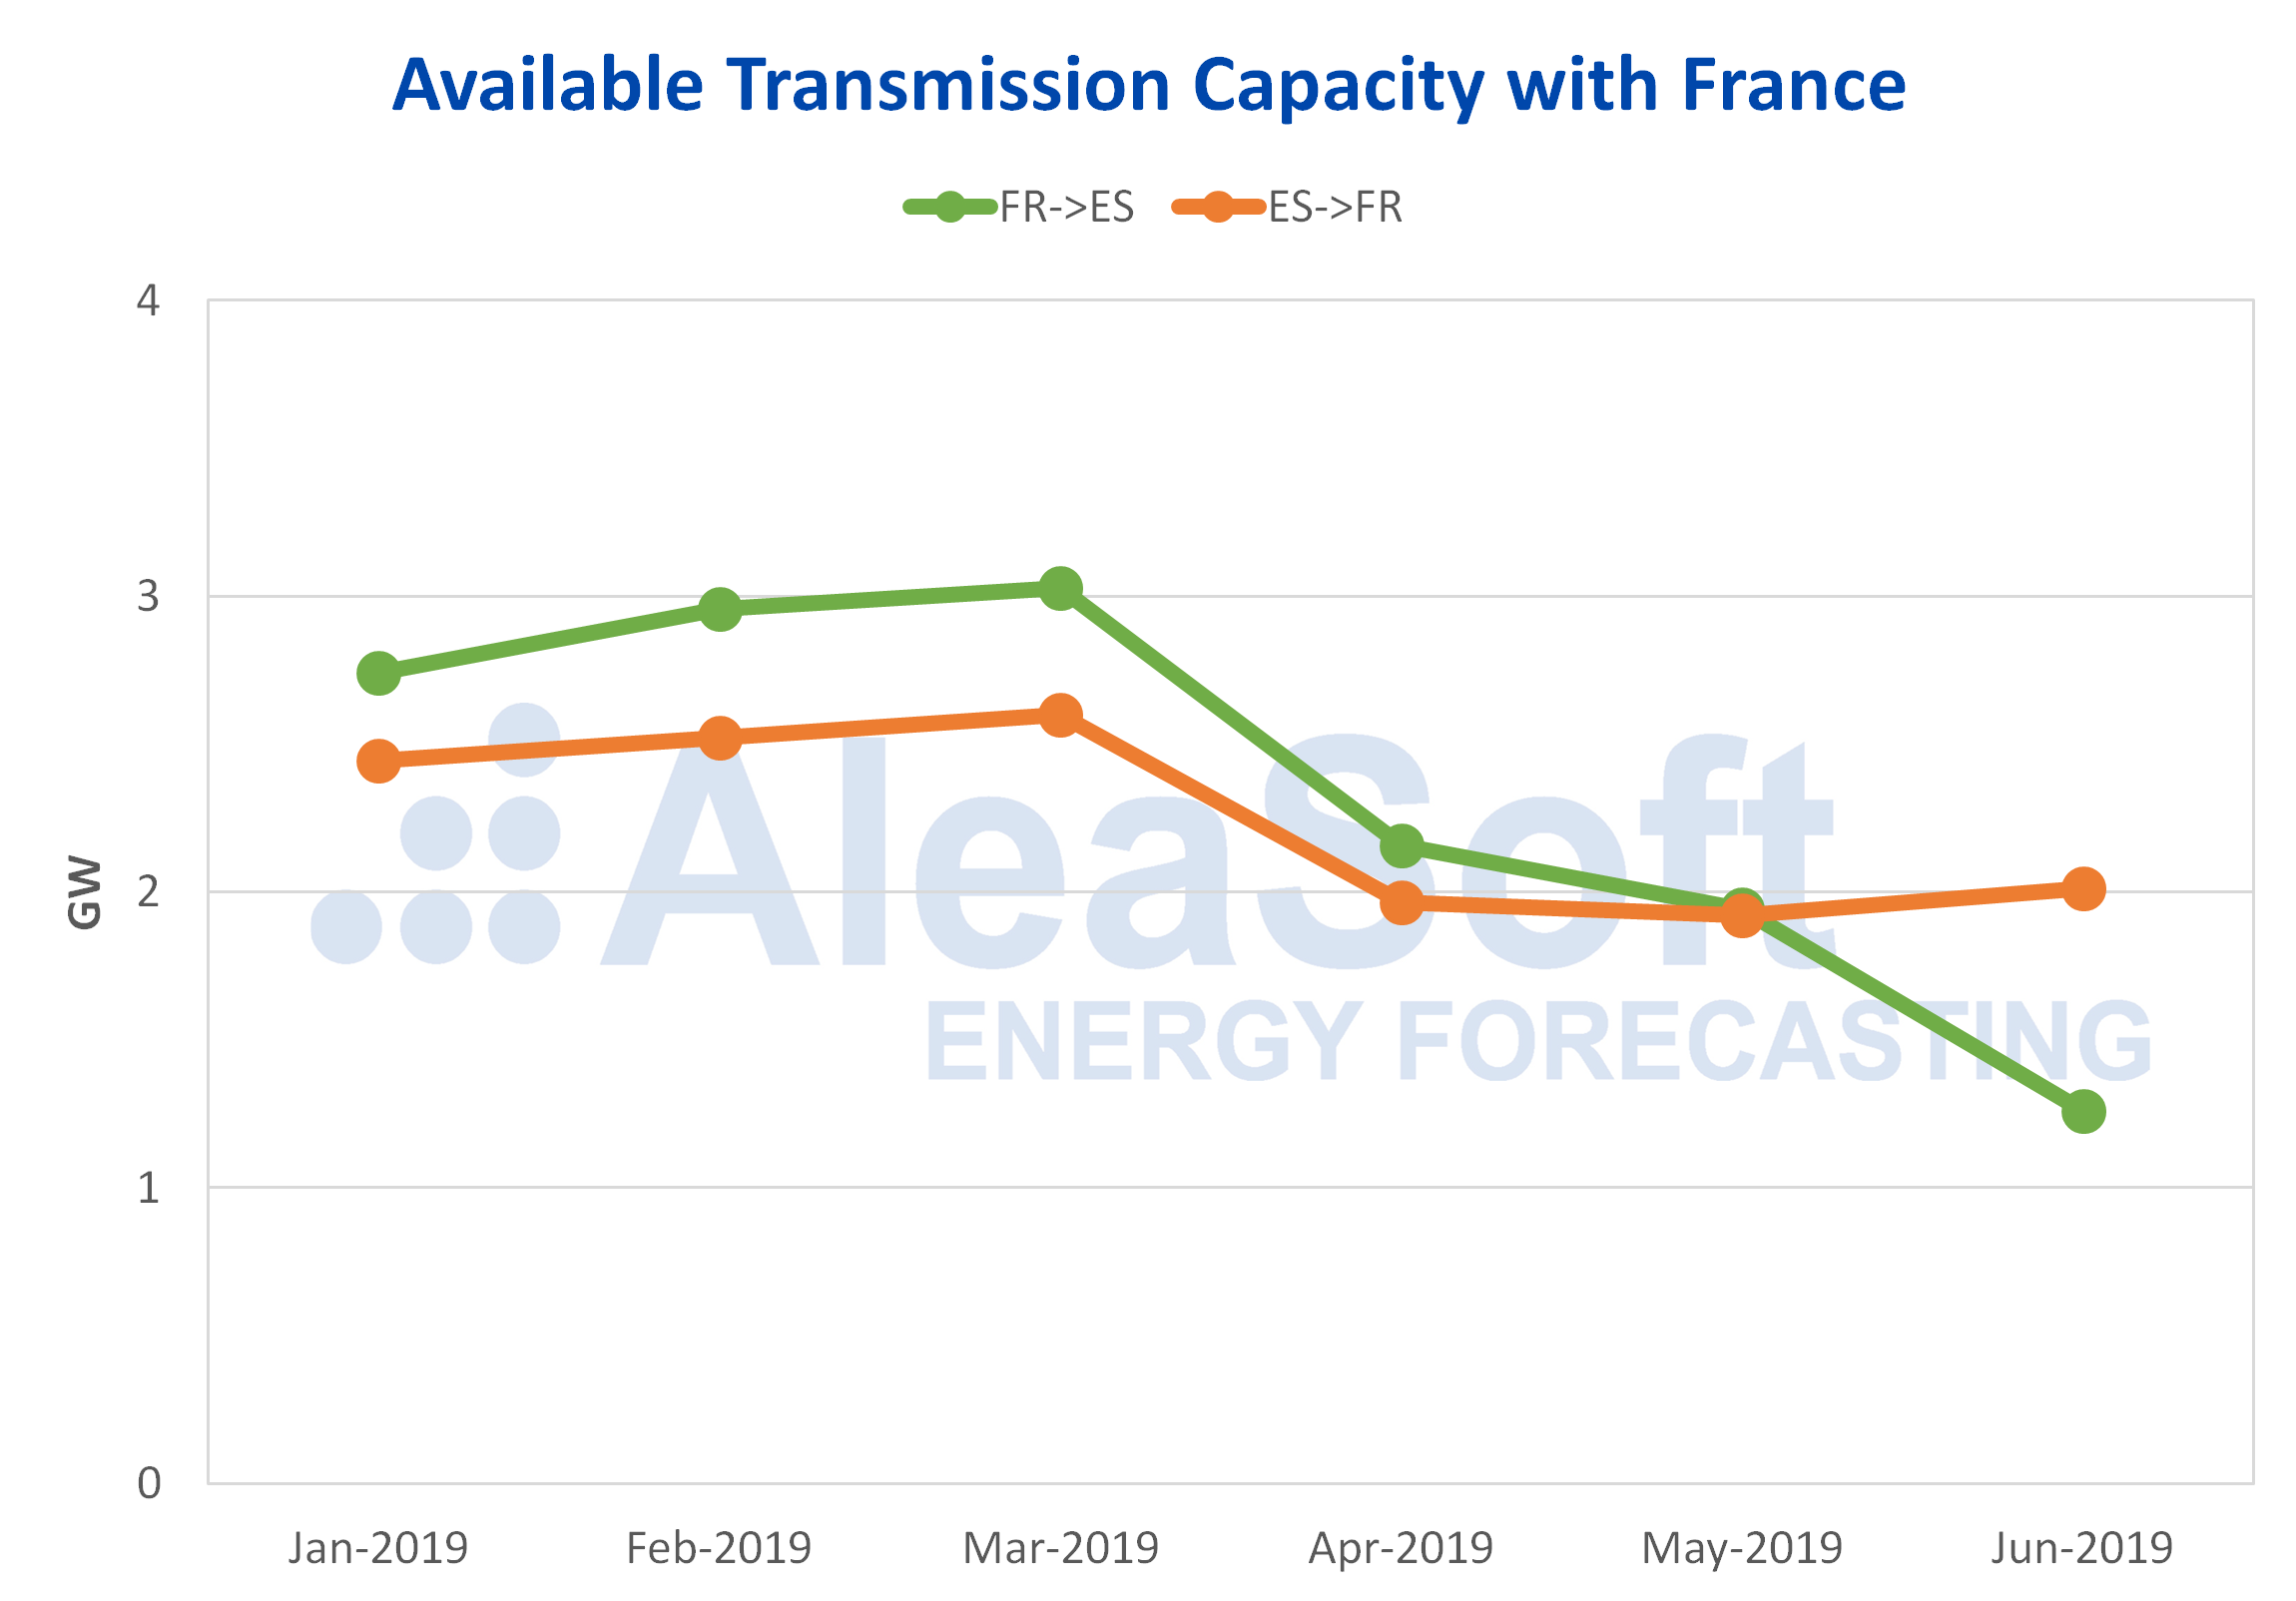 AleaSoft - Available electricity transmission capacity France